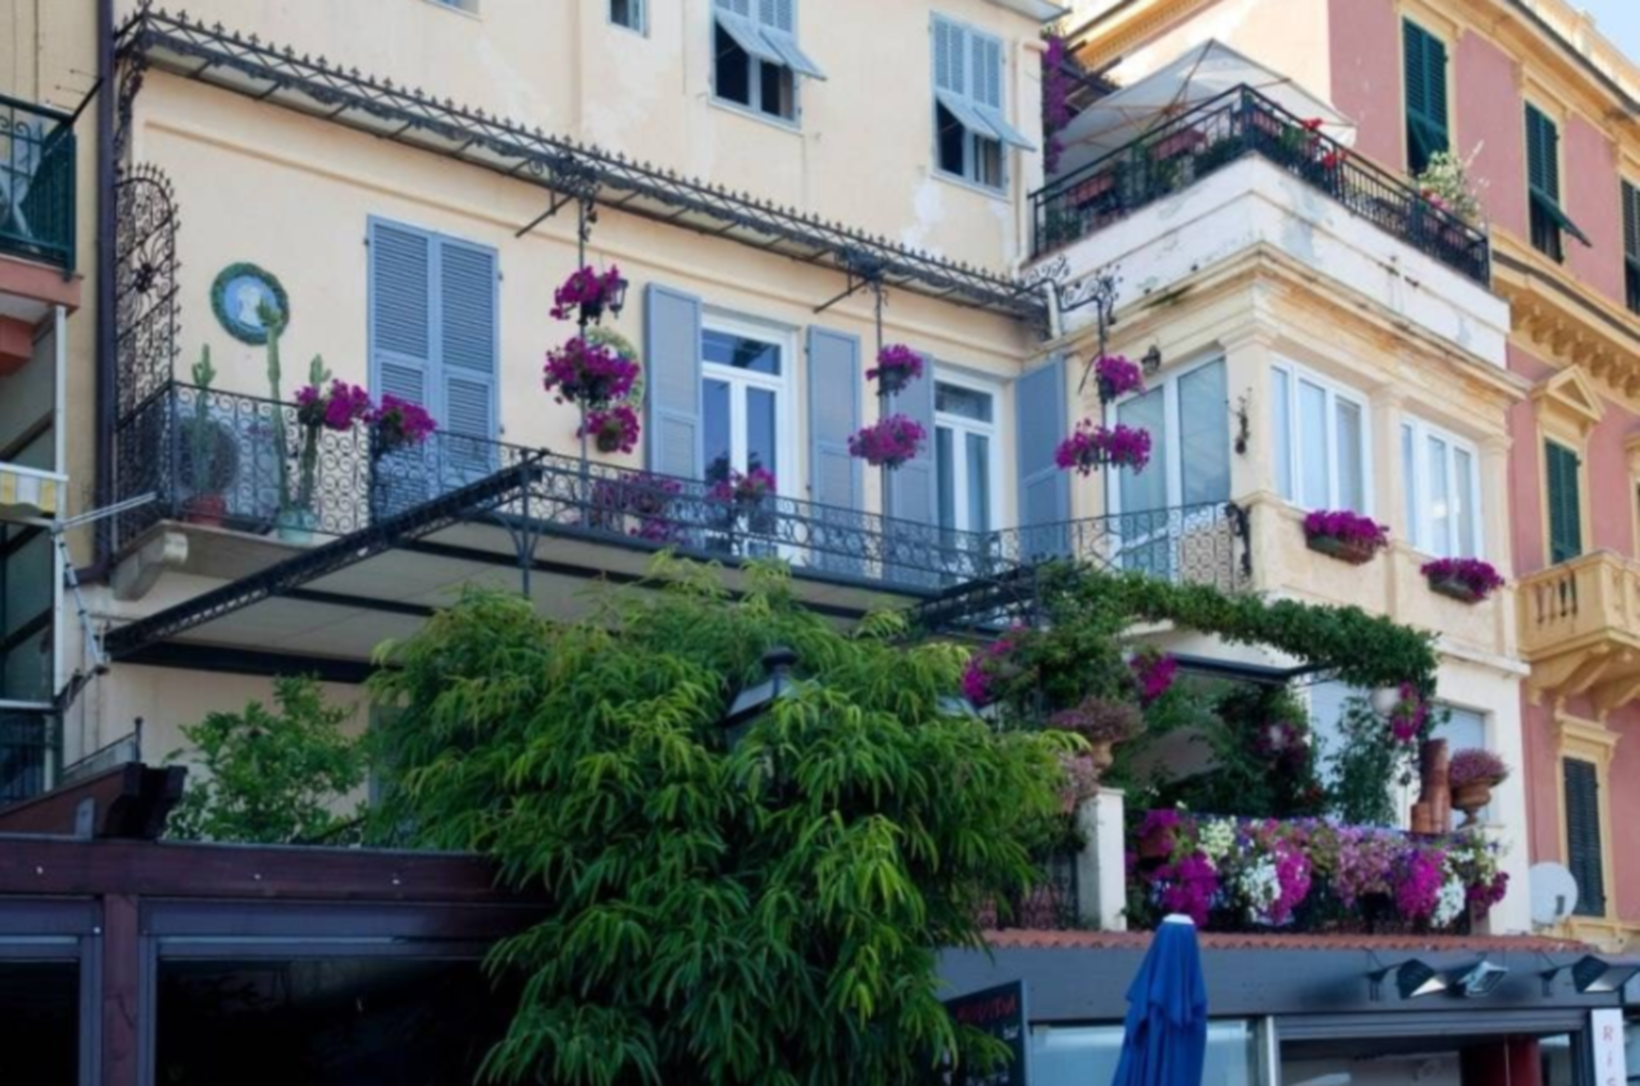 A person standing in front of a building at Bed and Breakfast Il Girasole Alassio.